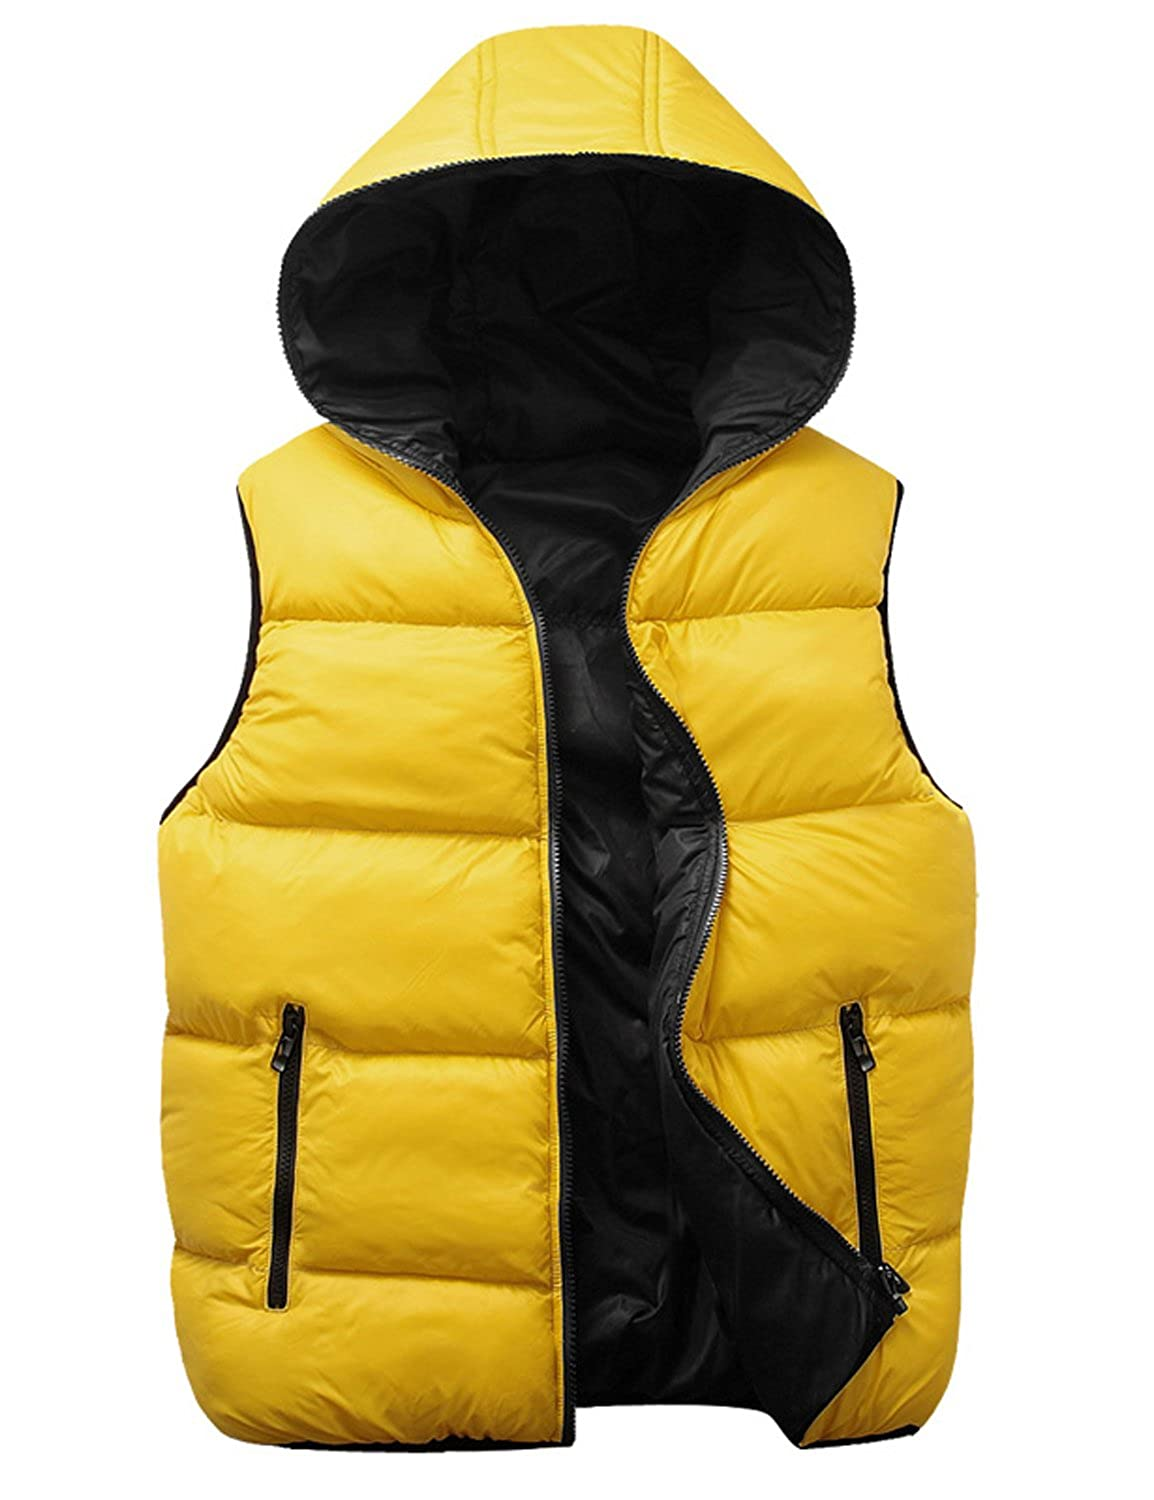 , Yellow L Only Faith Boys Autumn /& Winter Glazing Down-like Hooded Vest Couples Waistcoat chest:42.52